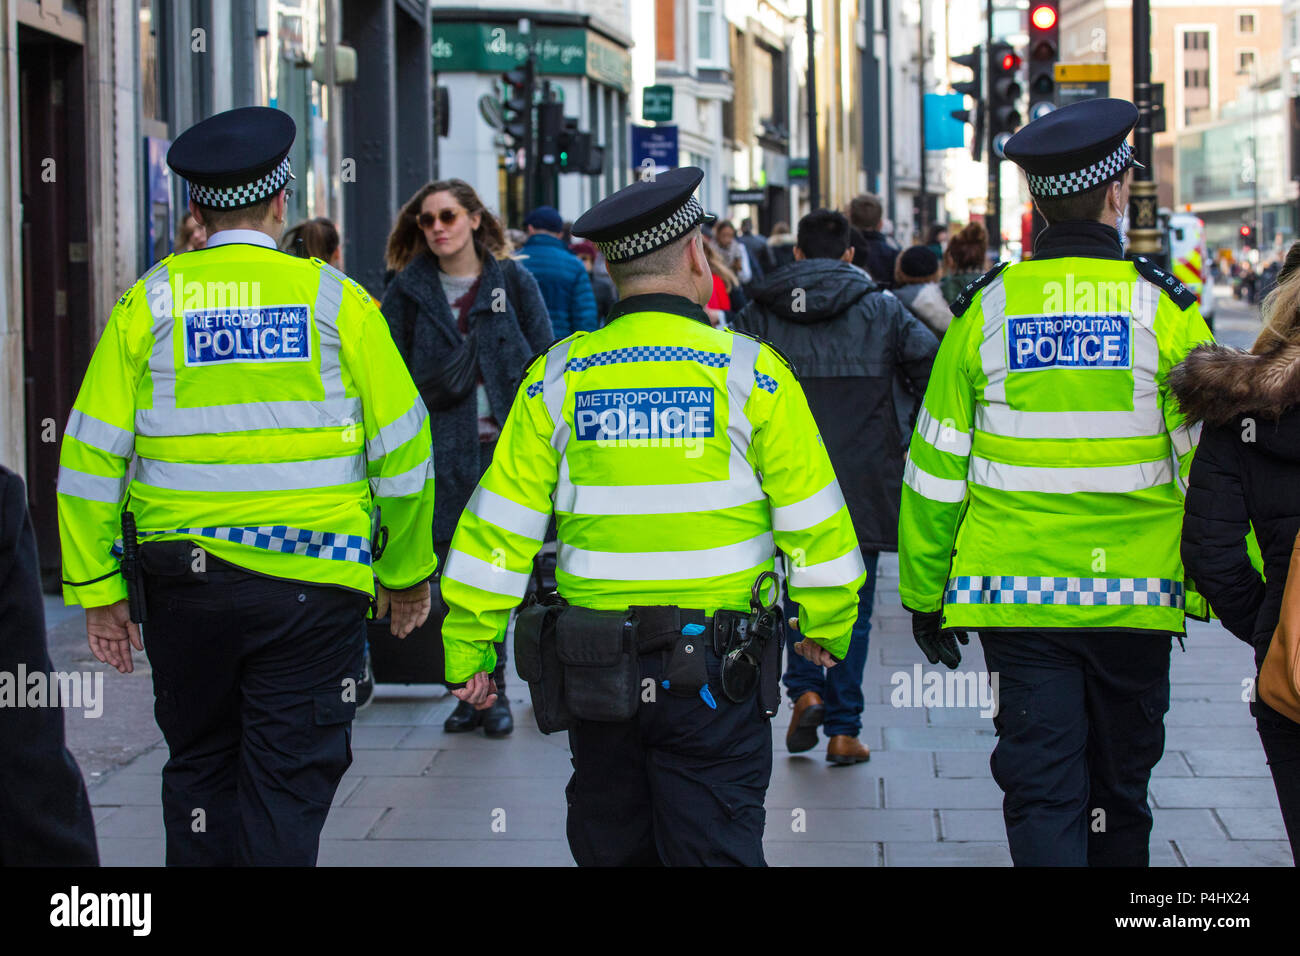 LONDON, UK - FEBRUARY 16TH 2018: Metropolitan Police Officers walking down Oxford Street in central London, on 16th February 2018. - Stock Image